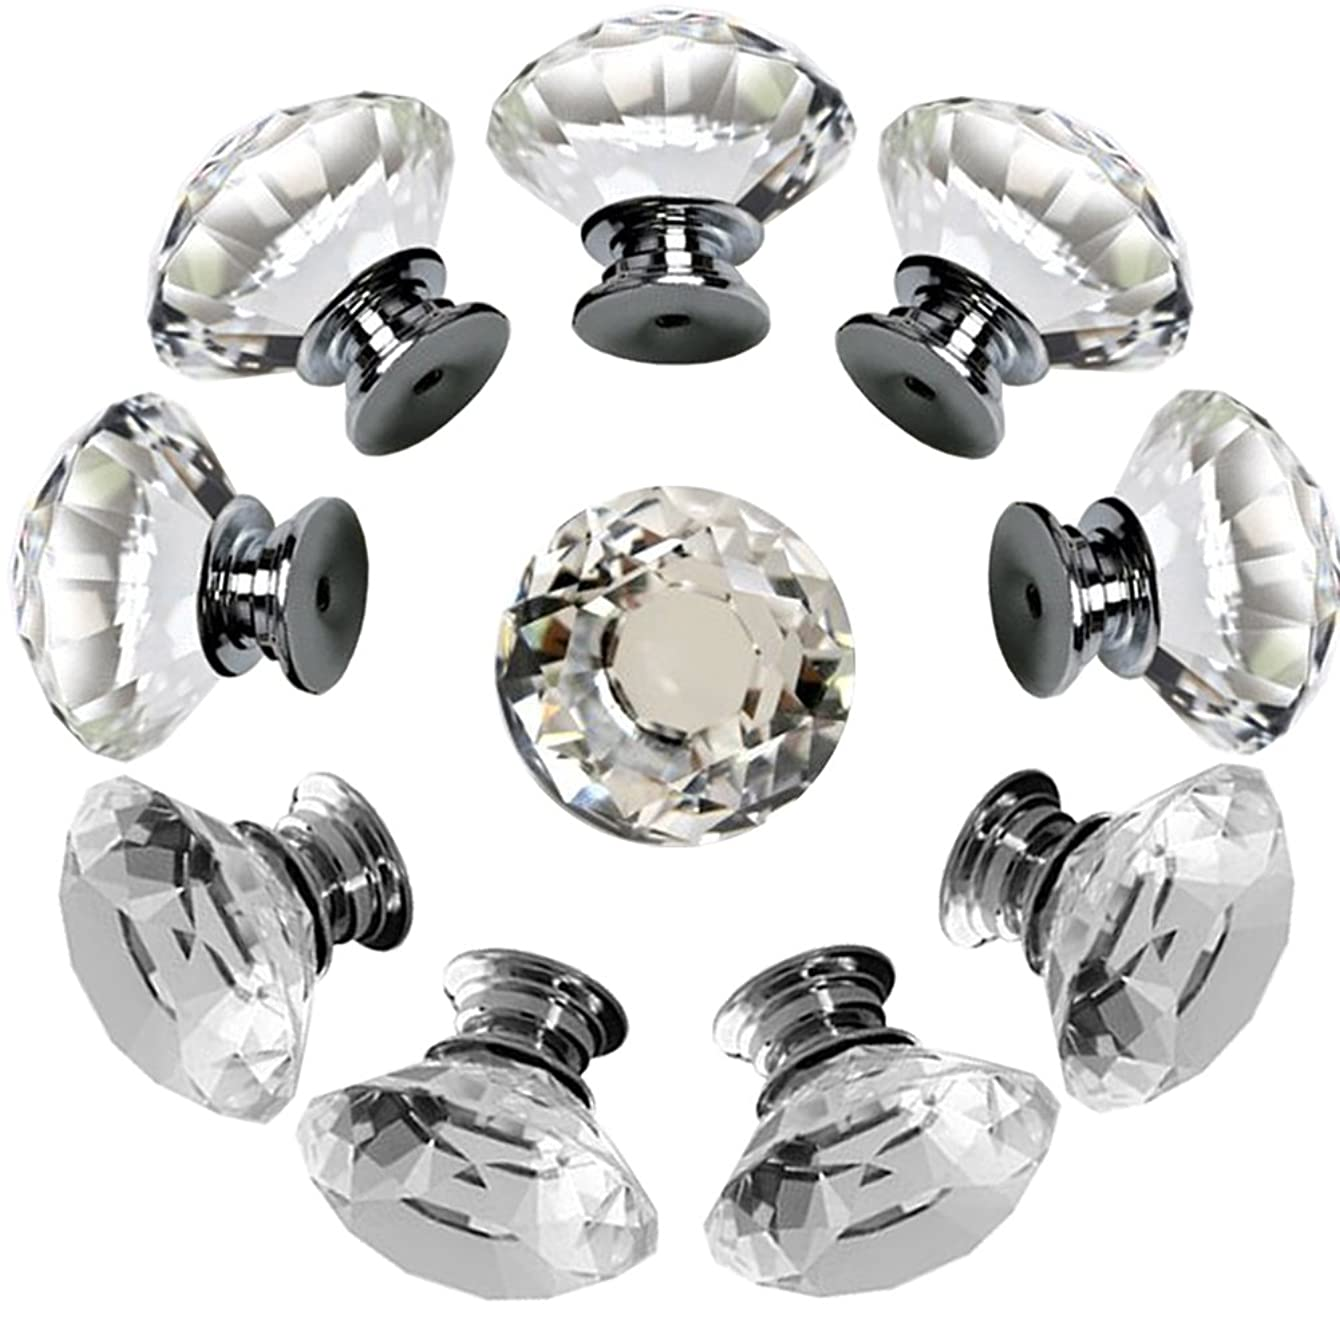 Drawer Knob Pull Handle Crystal Glass Diamond Shape Cabinet Drawer Pulls Cupboard Knobs with Screws for Home Office Cabinet Cupboard Bonus Silver Screws DIY (10 Pieces) ovzgdlomzfosw69